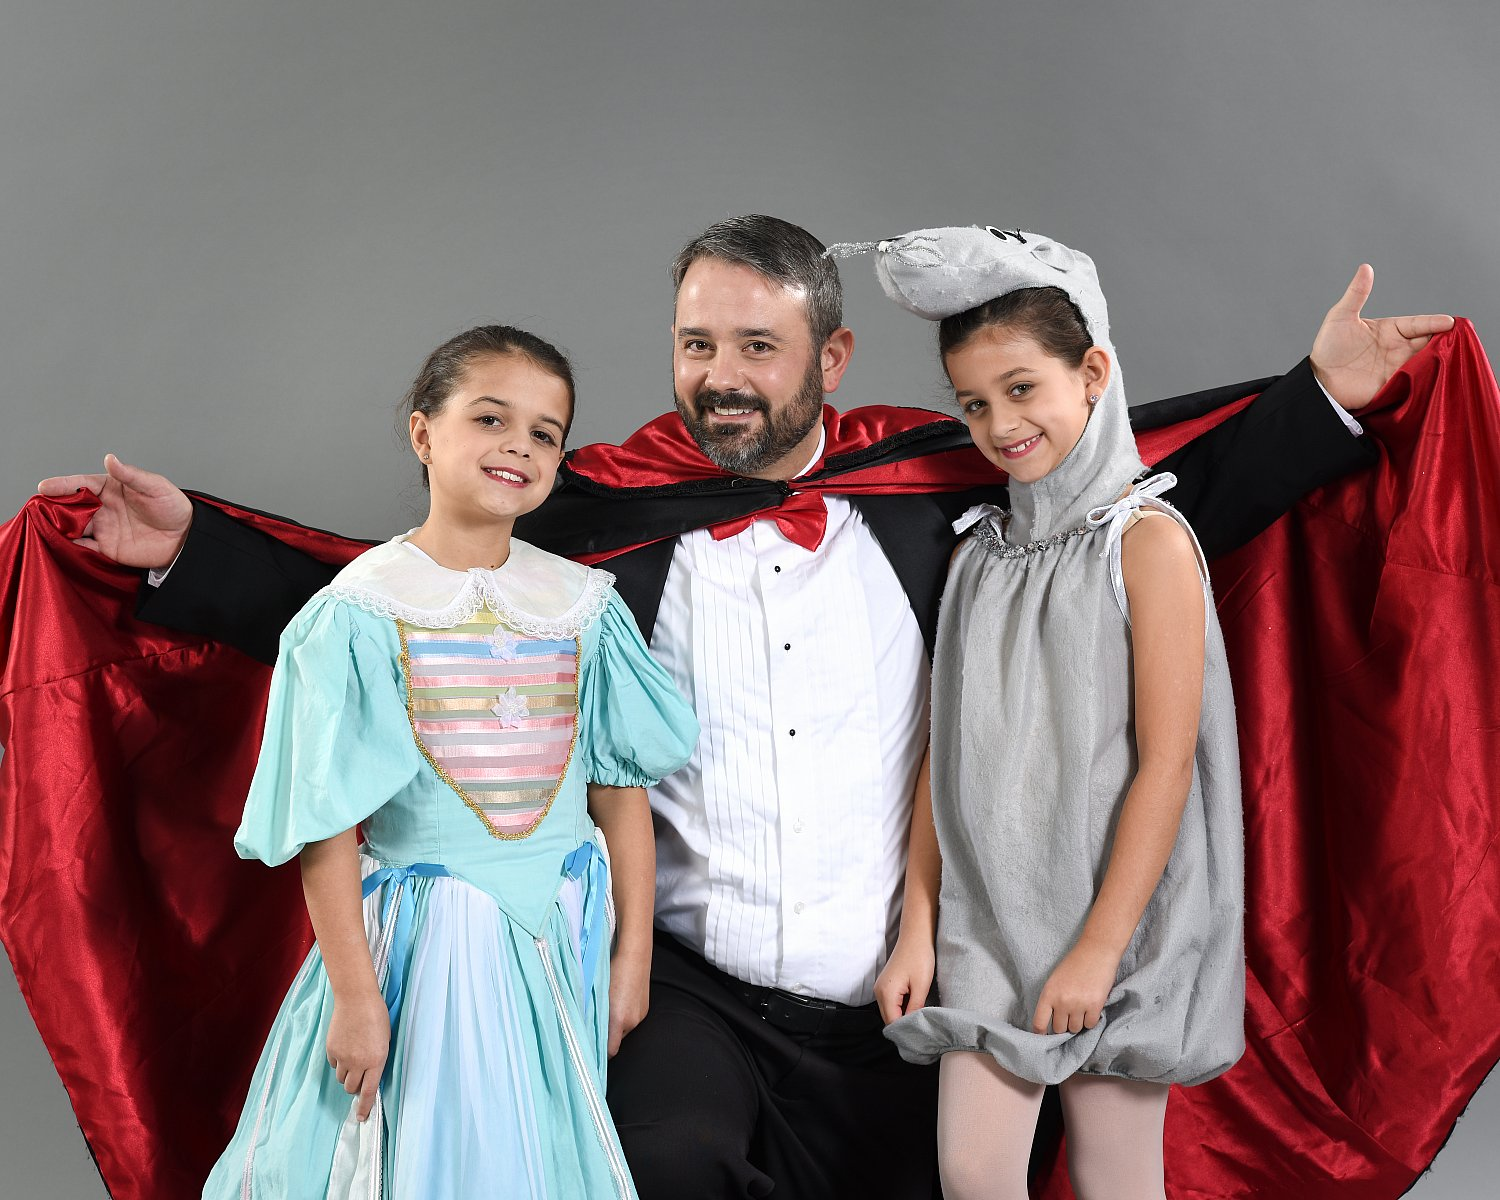 Nutcracker eGift Card: Sibling/Buddy Photos | Chuck,_Ali,_Gigi_Carbonaro0025.jpg